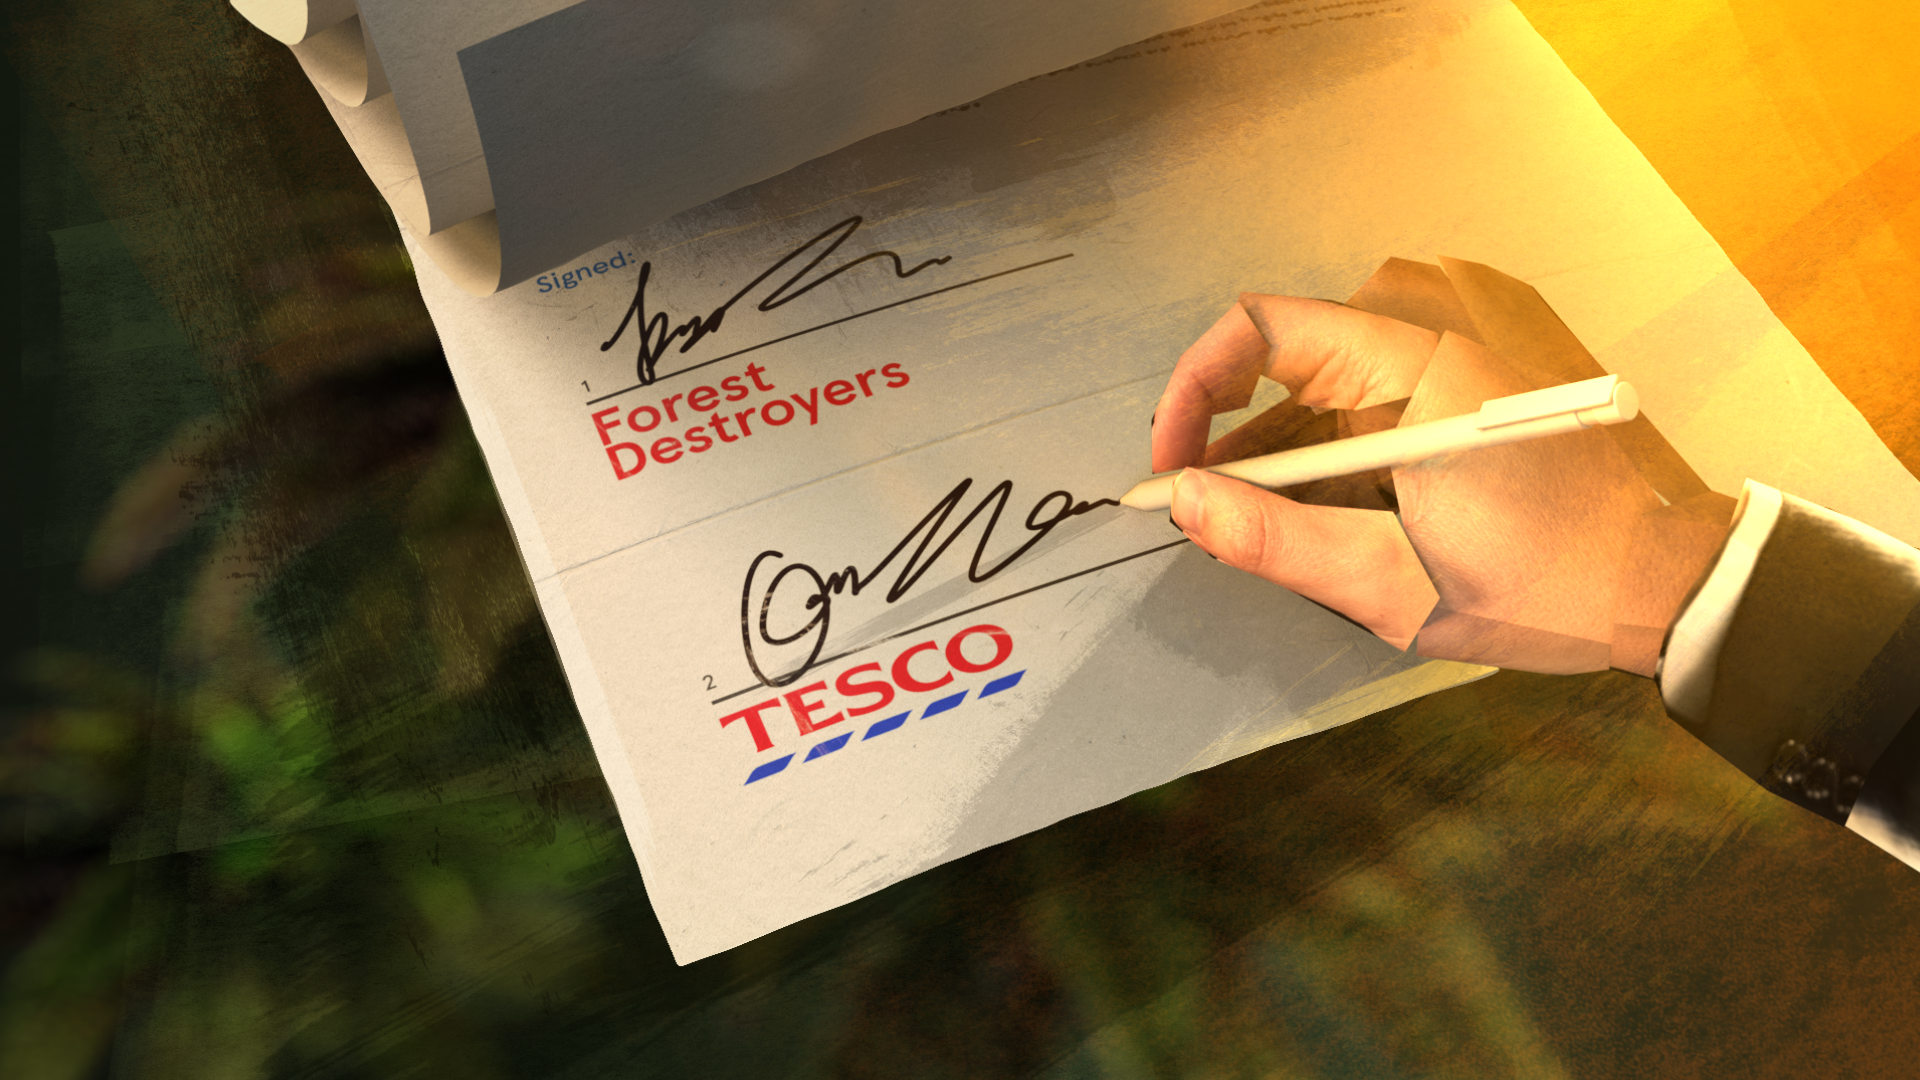 A still from the Tesco's burning secret film, an animated hand signing a contract on behalf of Tesco with the other party labelled Forest Destroyers